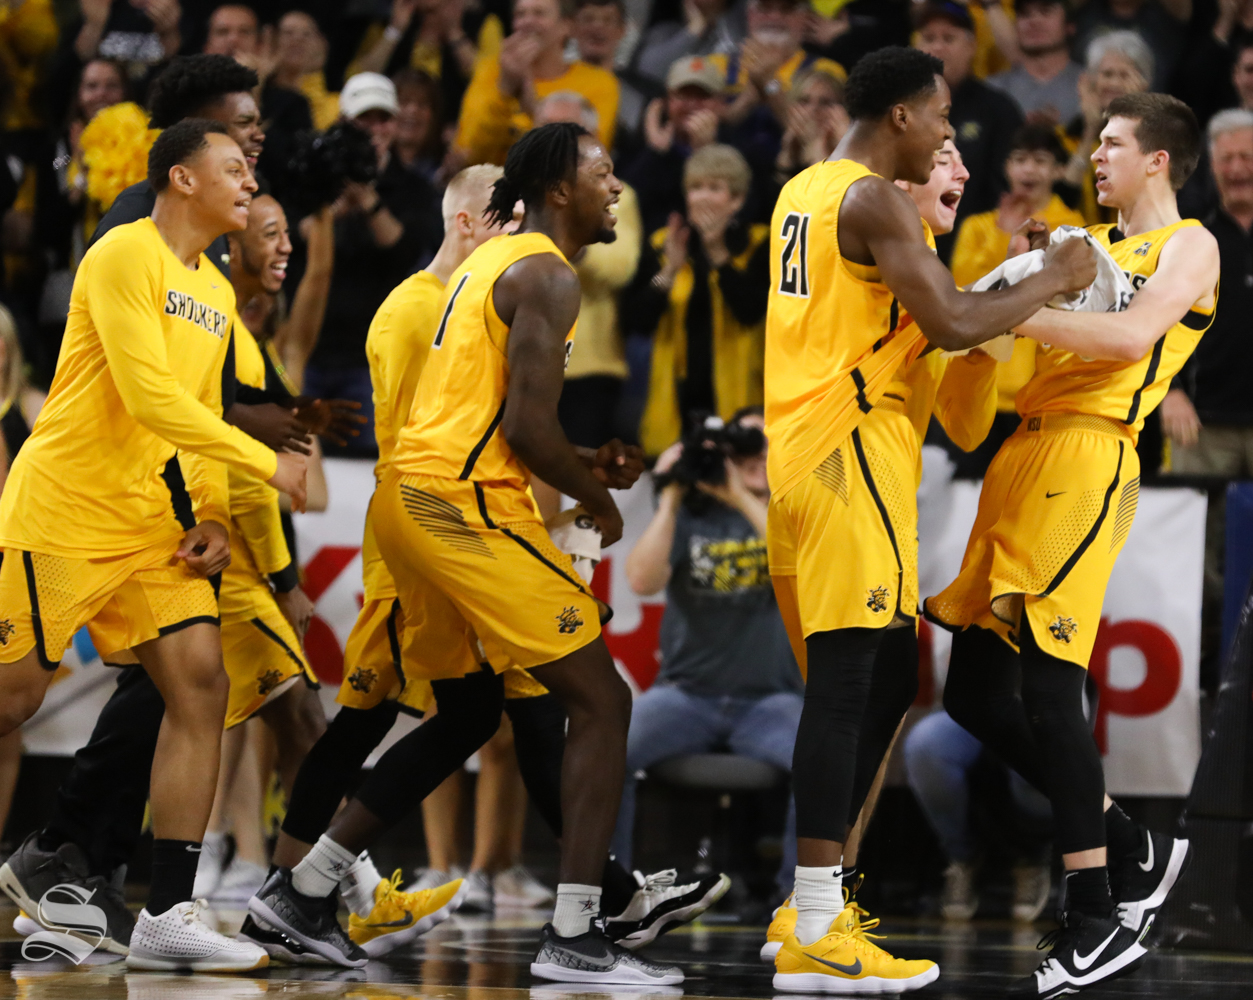 Wichita State Shockers celebrates with Wichita State guard Austin Reaves, right, after Reaves finished the first half 7-8 from beyond the arc against the Tulsa Golden Hurricane at Koch Arena.